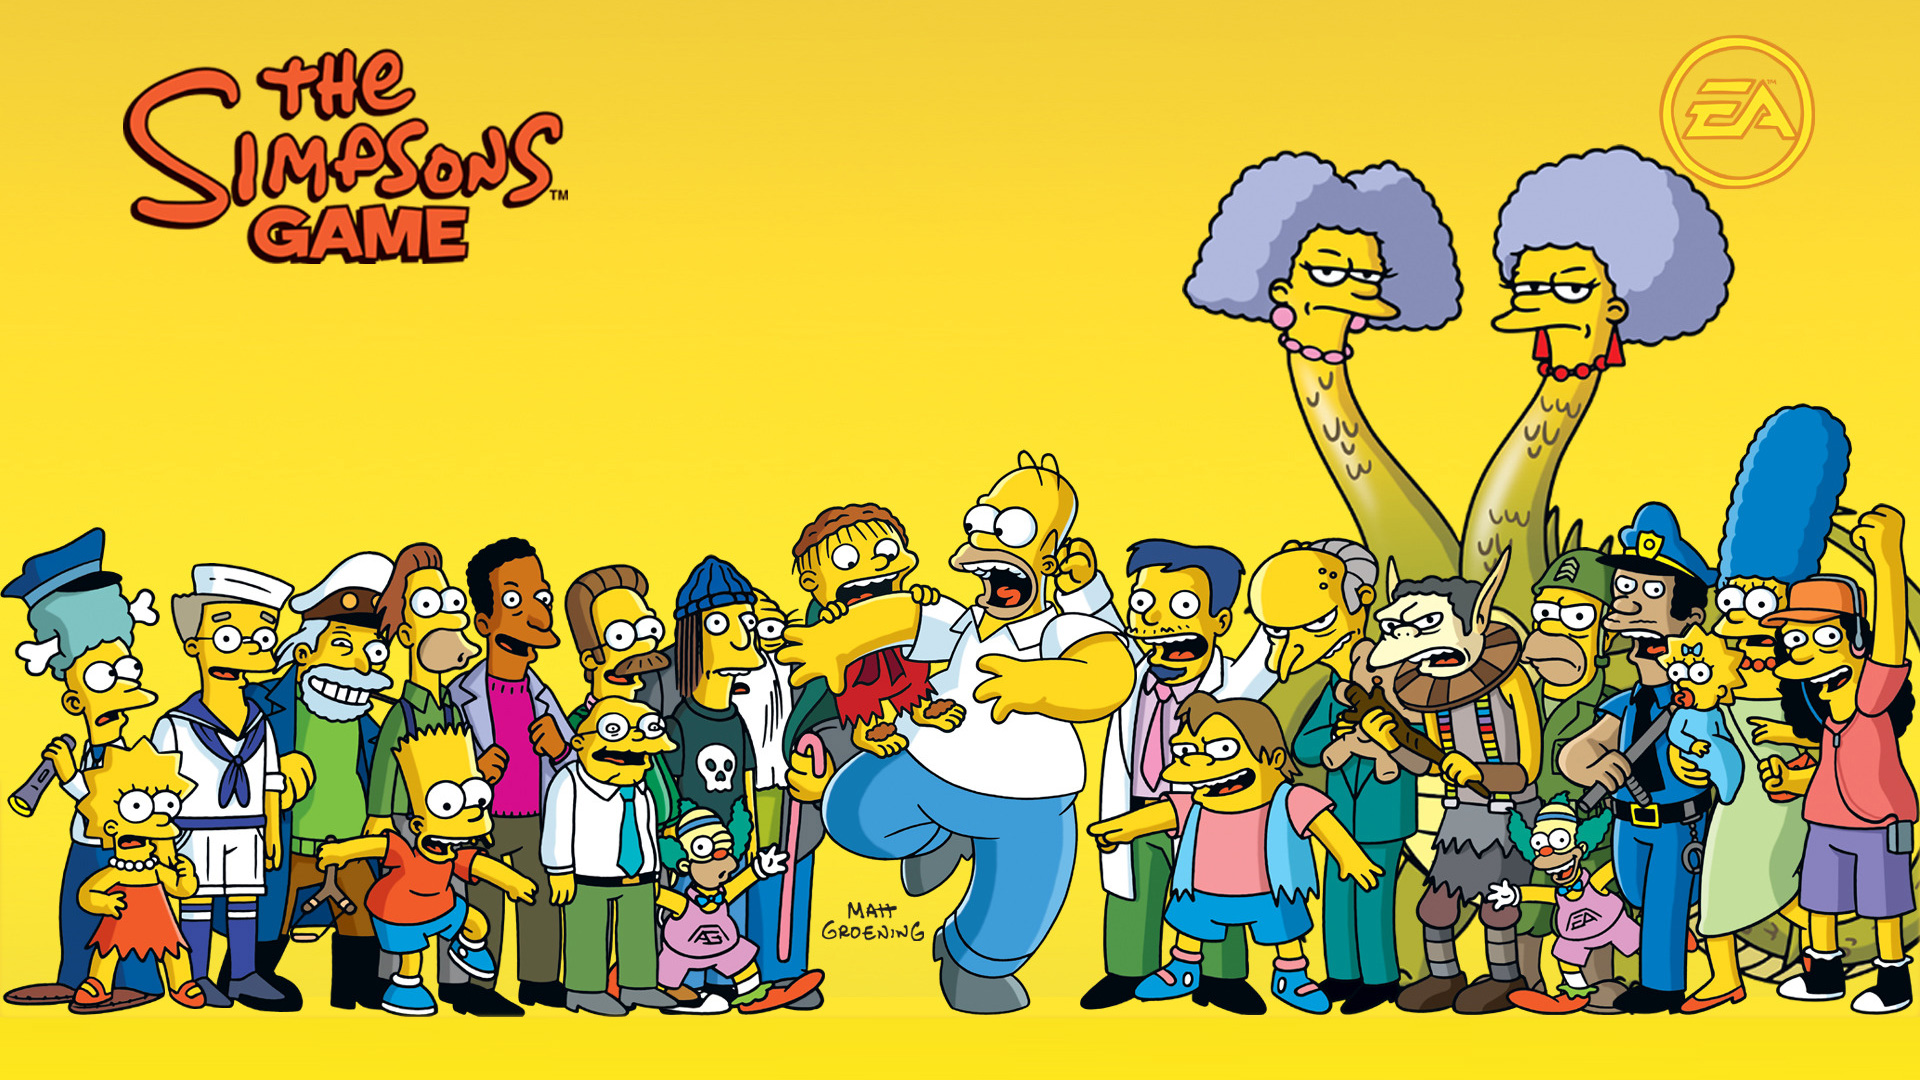 The Simpsons Game Wallpaper in 1920x1080